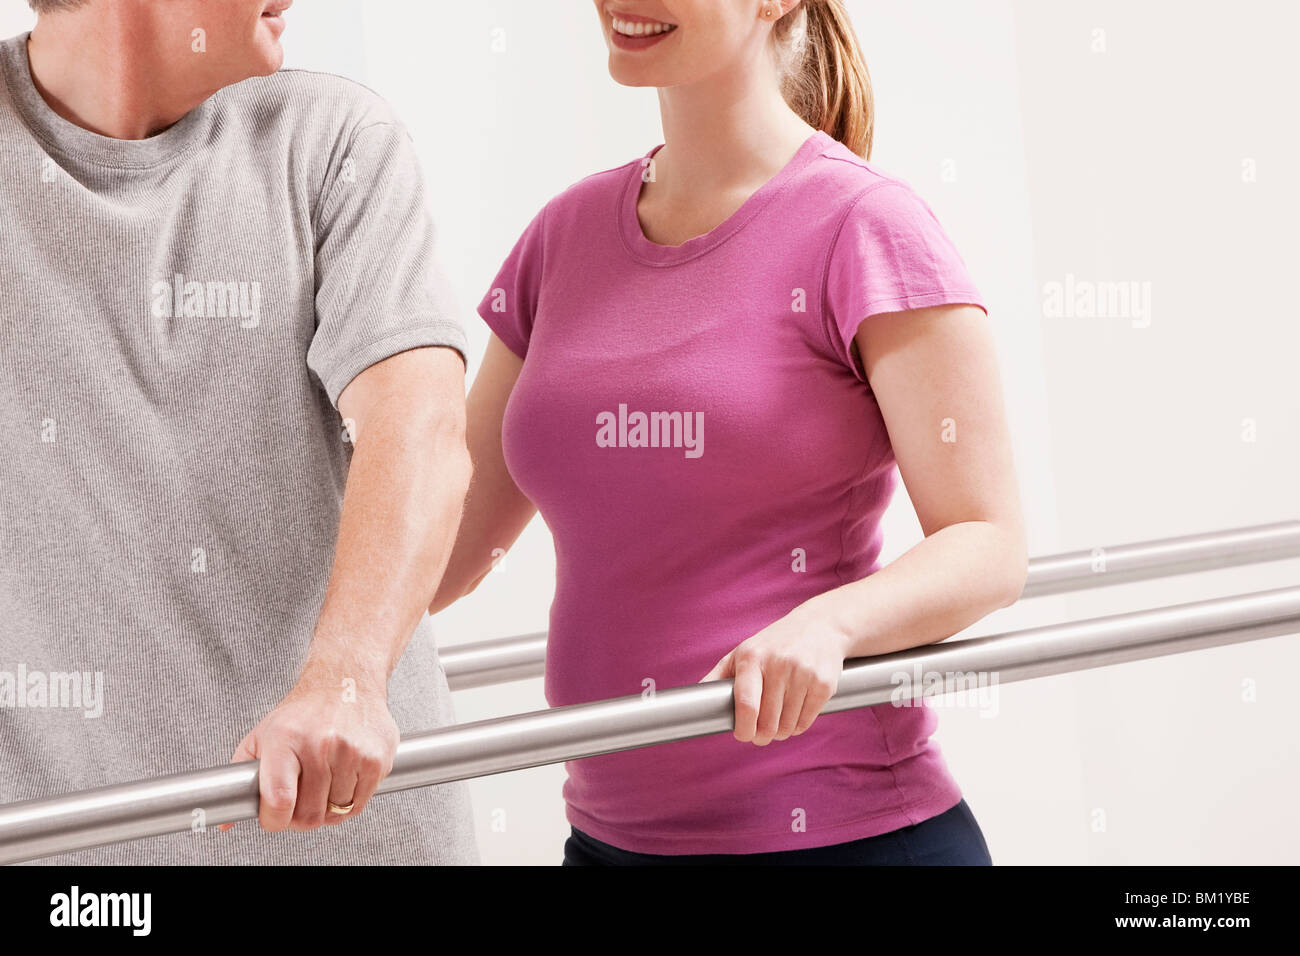 Physiotherapist assisting a patient in walking - Stock Image